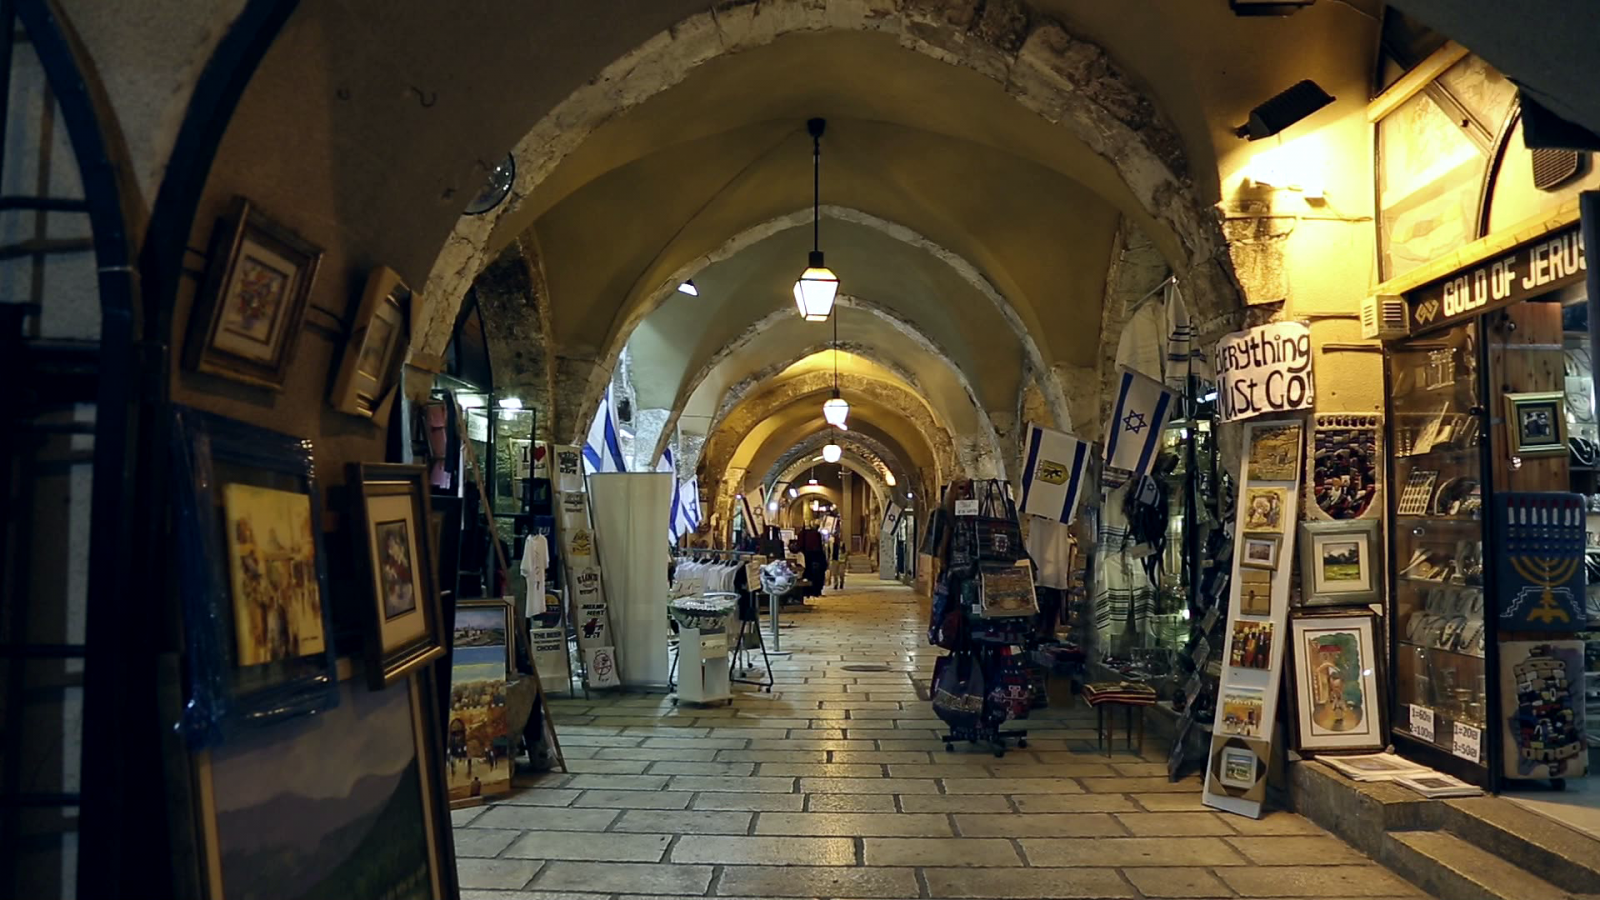 Inside Israel Diary: Behind the Veil of Jerusalem's Old City